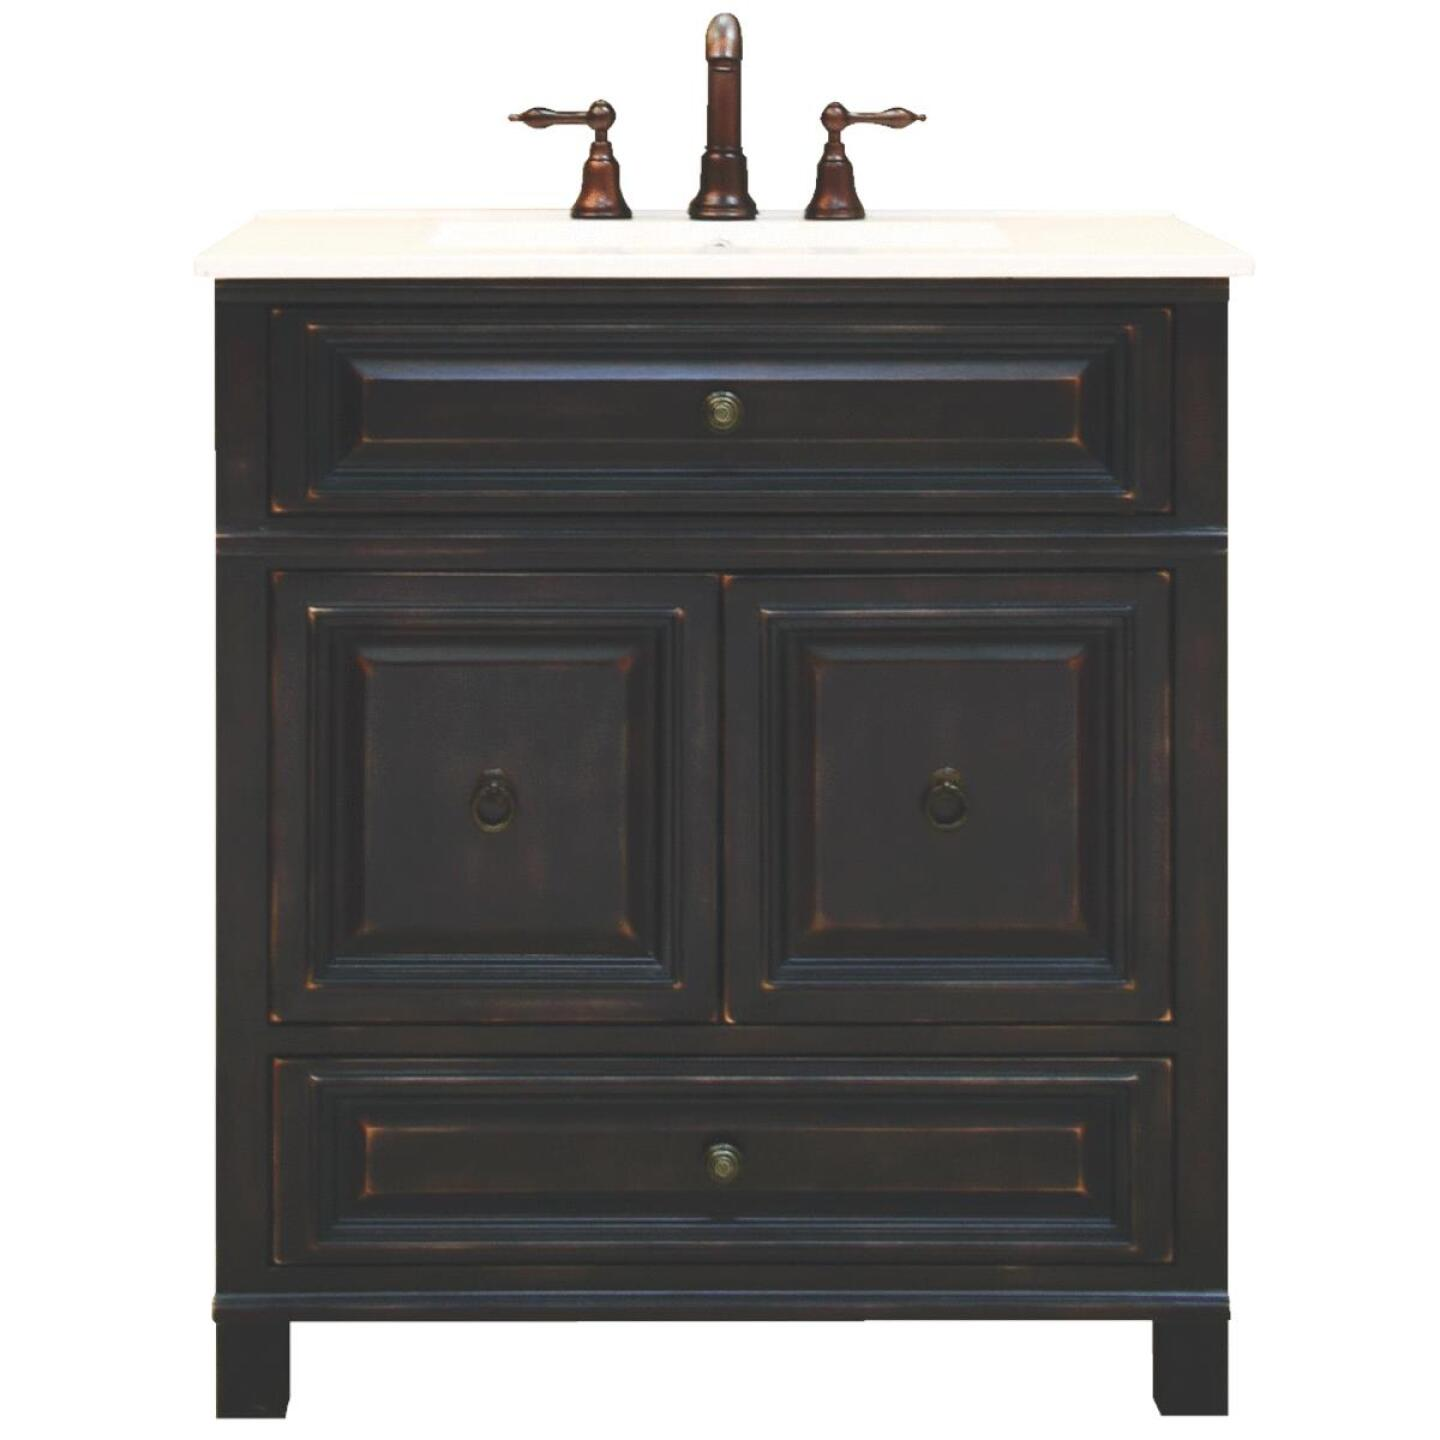 Sunny Wood Barton Hill Black Onyx 30 In. W x 34 In. H x 21 In. D Vanity Base, 2 Door/1 Drawer Image 298